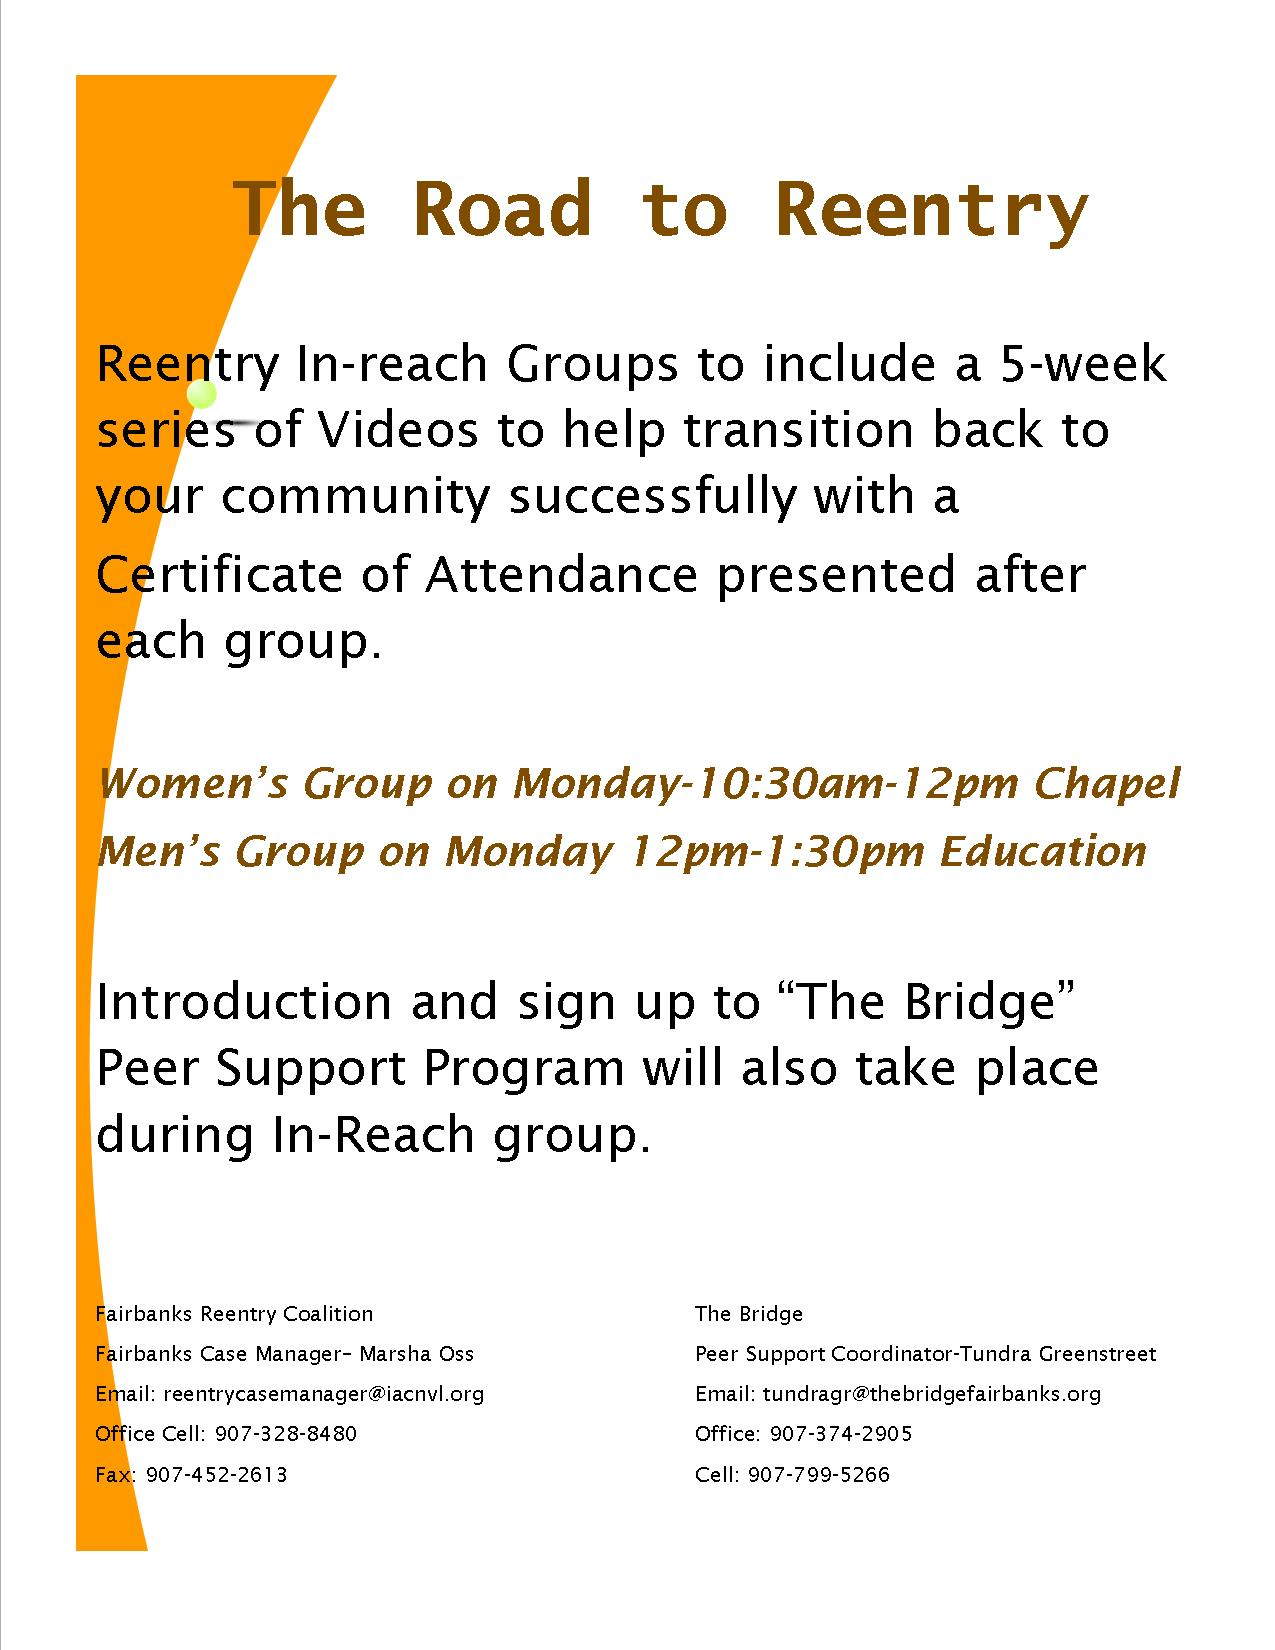 Road to Reentry Flier.jpg